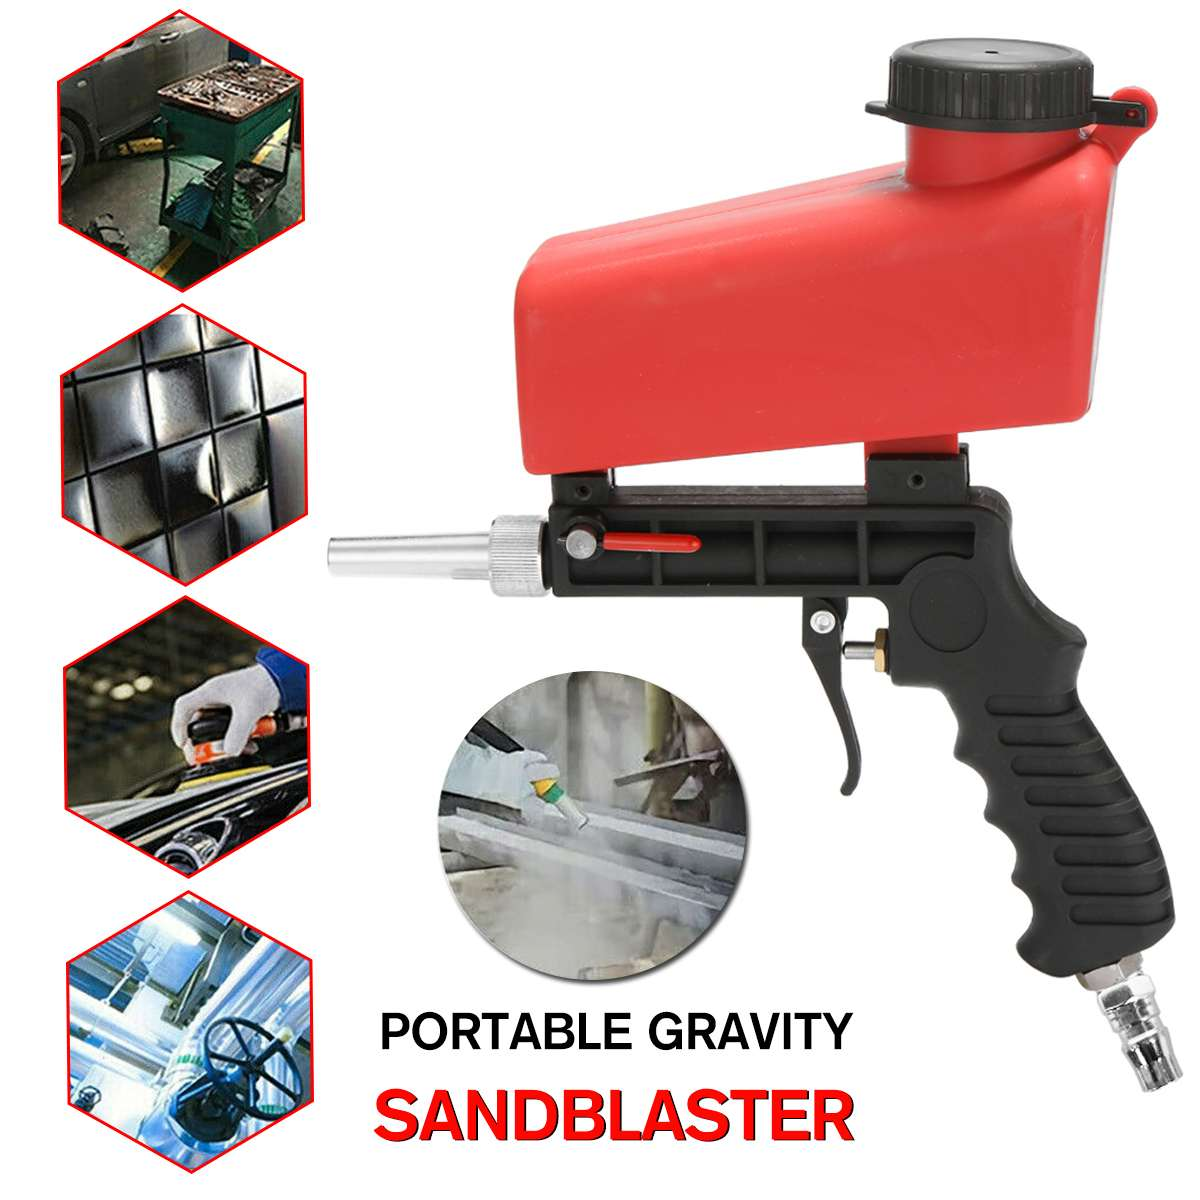 90psi Portable Gravity Sandblasting Guns Aluminium Pneumatic Sandblaster Spray Guns Sand Removal Blasting Power Machine